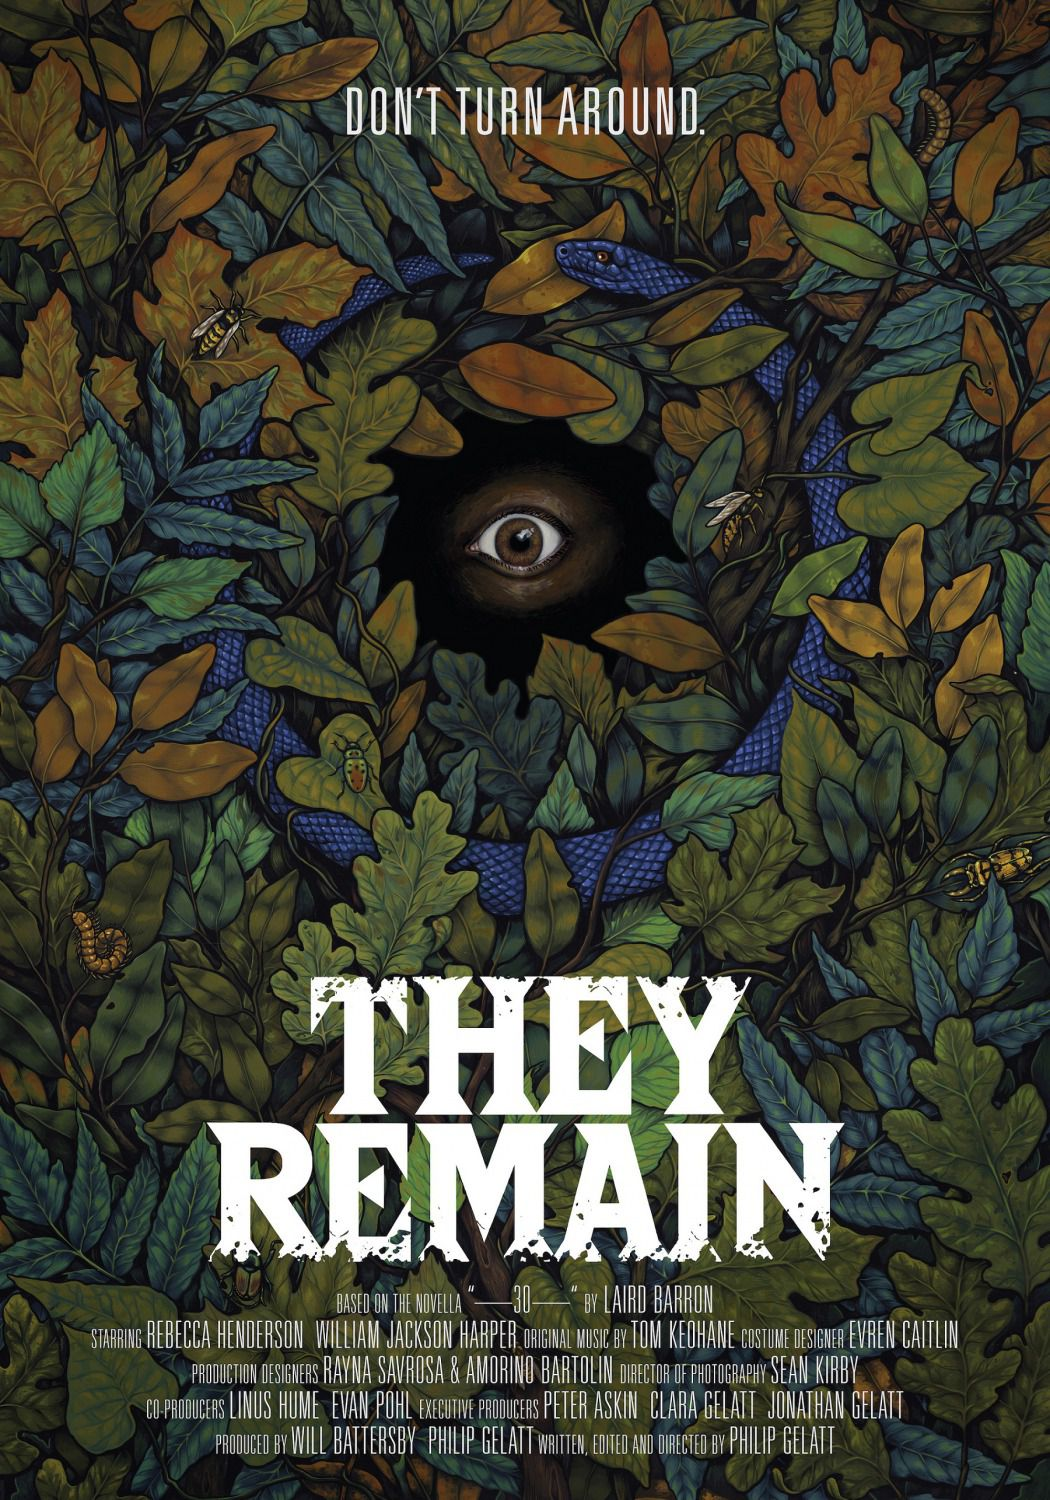 They Remain (2018) - film poster